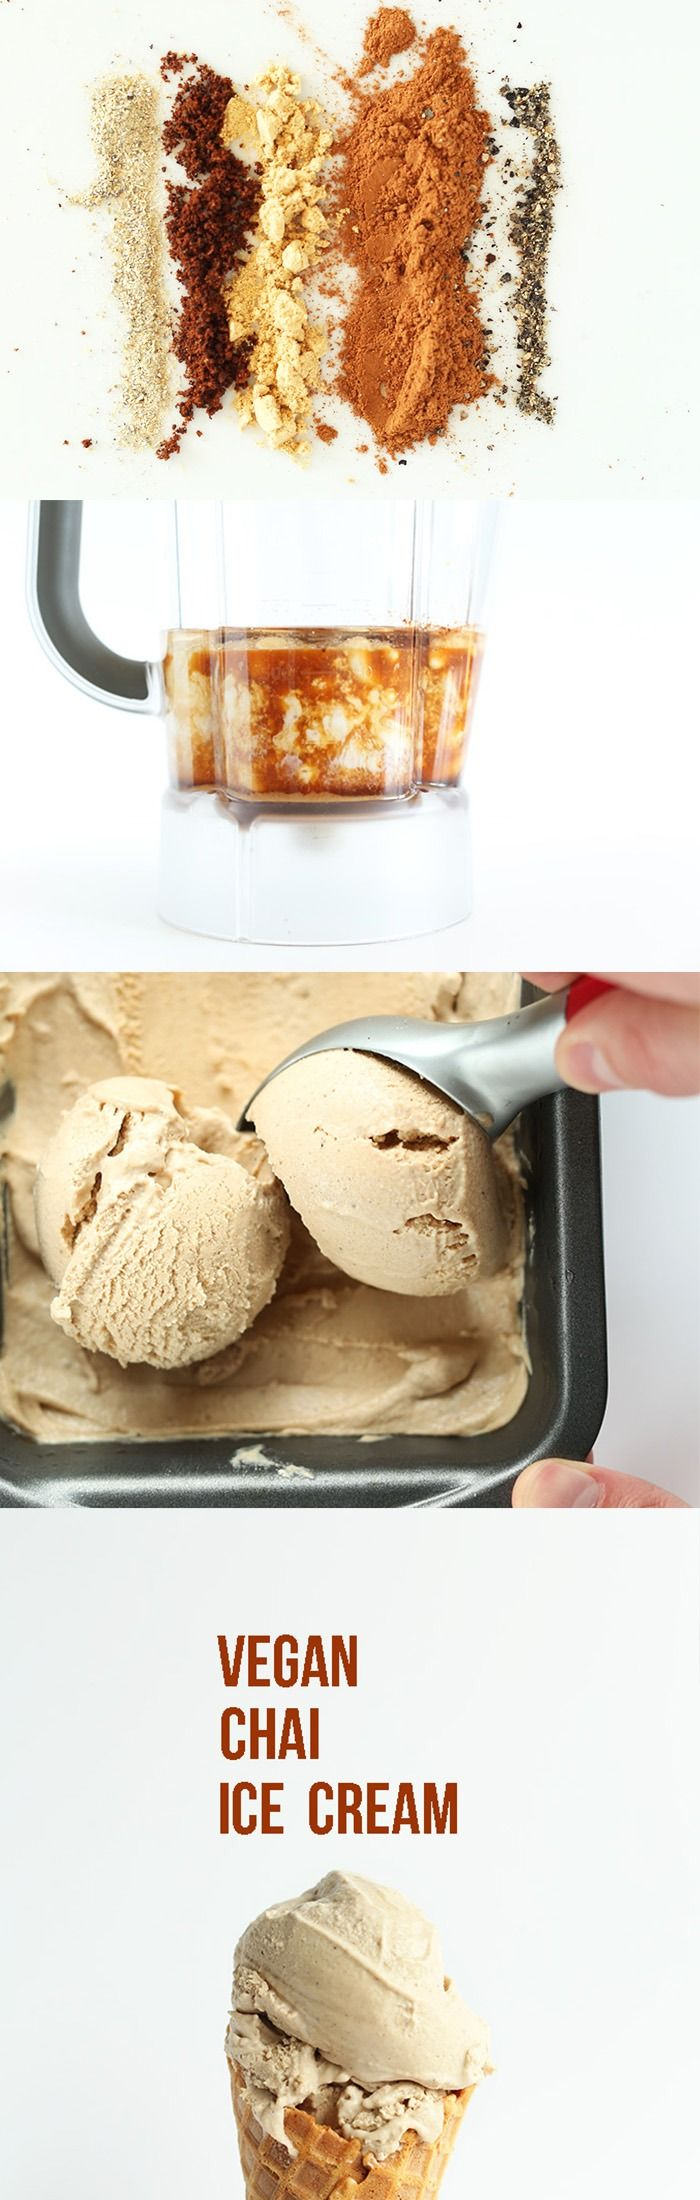 Creamy Vegan Chai Ice Cream! Simple, whole foods ingredients and TONS of flavor. #vegan #glutenfree